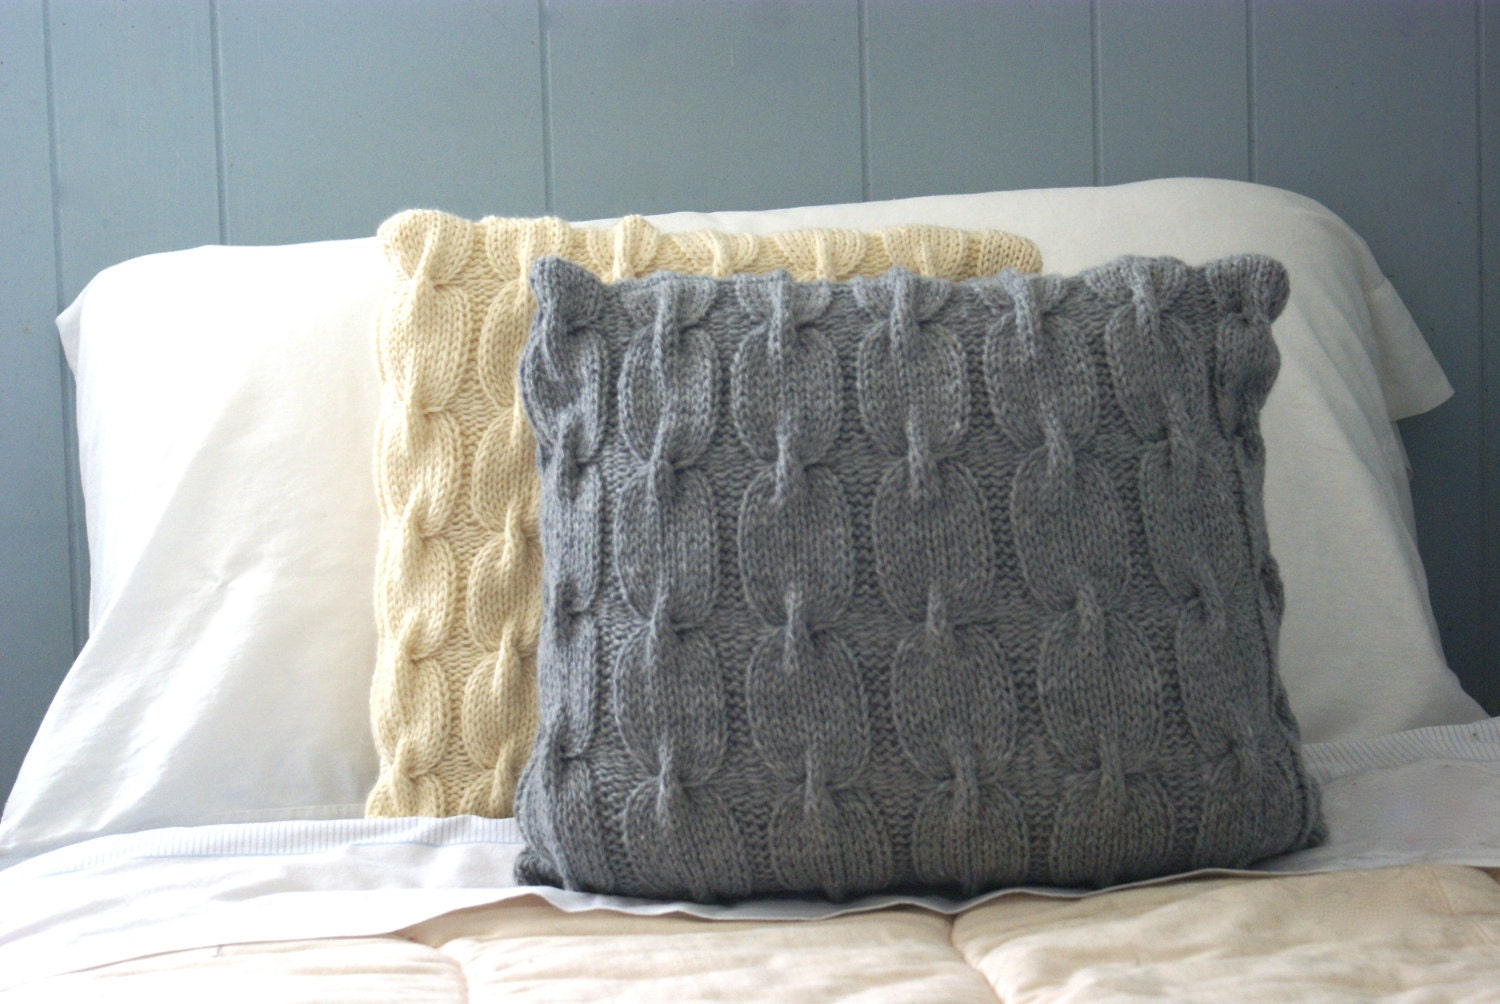 "Chain Link Cable Knit Wool Pillow Sham in Gray - 18"", Sweater Pillow, Throw Pillow, Knit Pillow, Knit Home Decor - PreciousKnits"